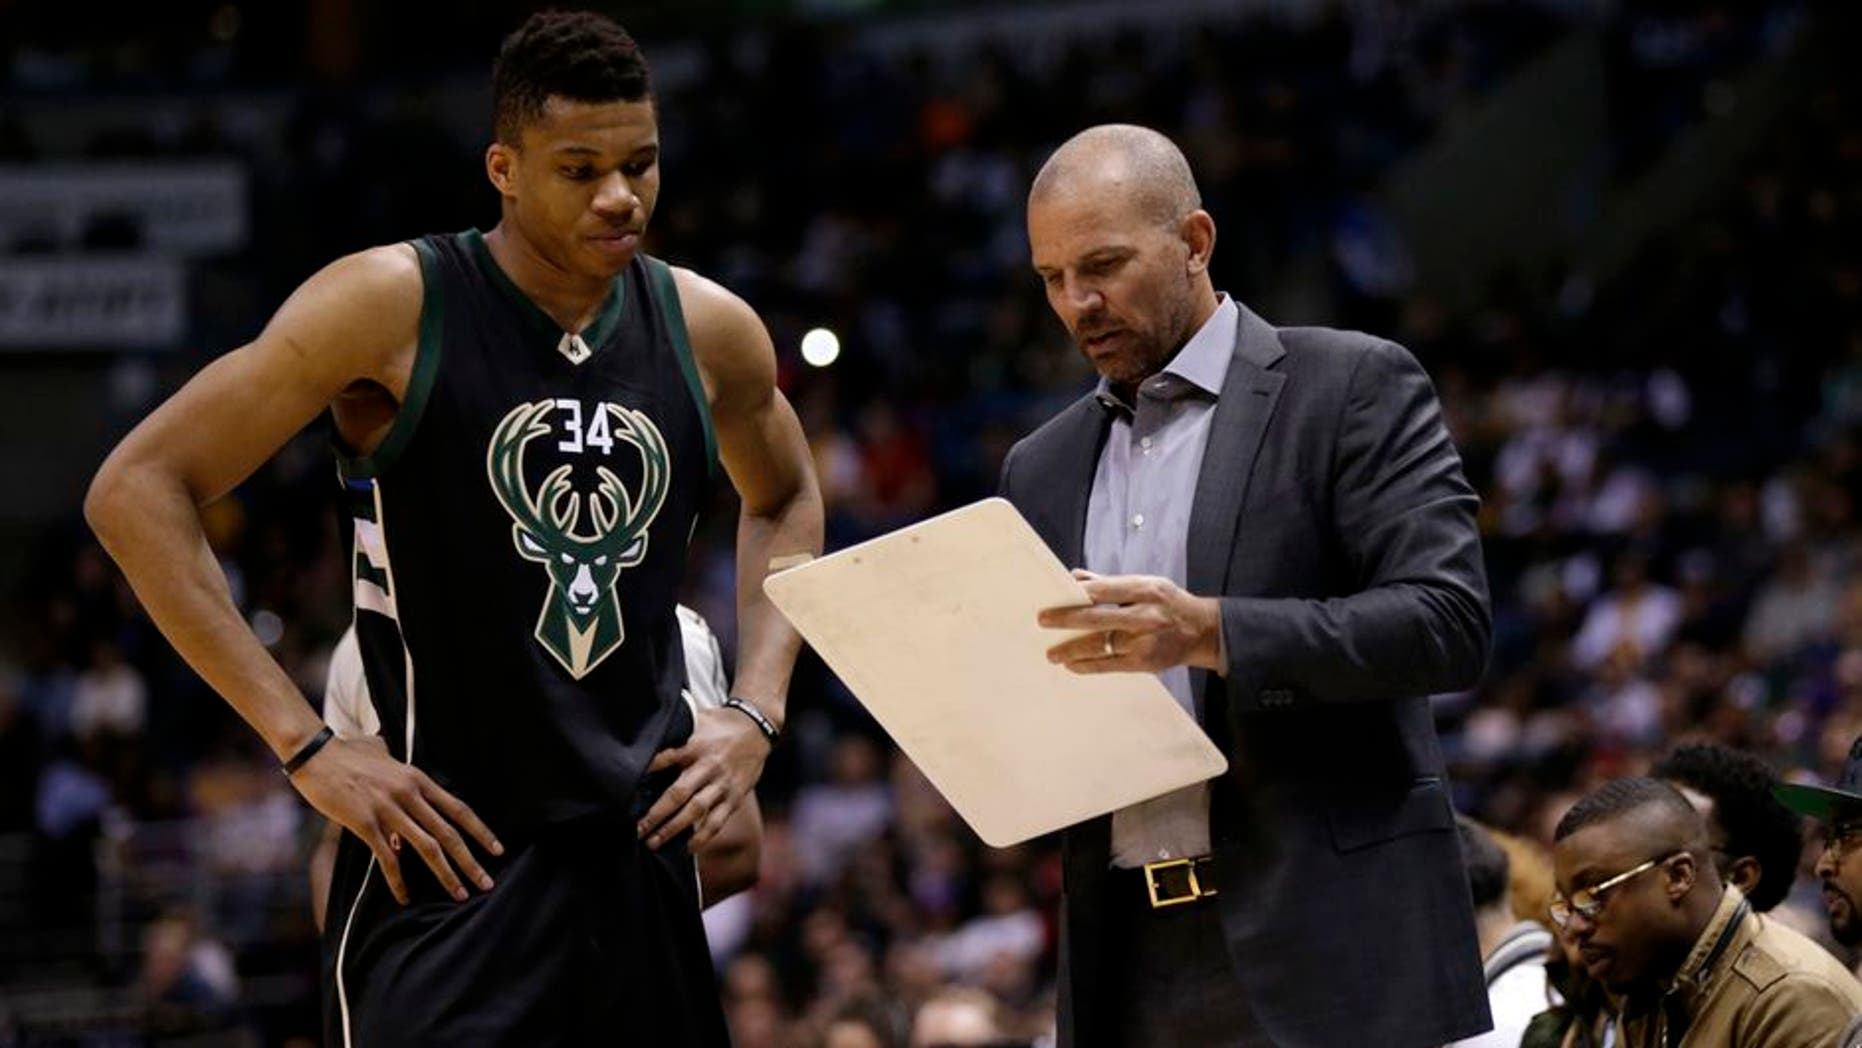 MILWAUKEE, WI - FEBRUARY 22: Head Coach Jason Kidd of the Milwaukee Bucks talks to Giannis Antetokounmpo #34 on the sidelines during the game against the Los Angeles Lakers at BMO Harris Bradley Center on February 22, 2016 in Milwaukee, Wisconsin. NOTE TO USER: User expressly acknowledges and agrees that, by downloading and or using this photograph, User is consenting to the terms and conditions of the Getty Images License Agreement. (Photo by Mike McGinnis/Getty Images)